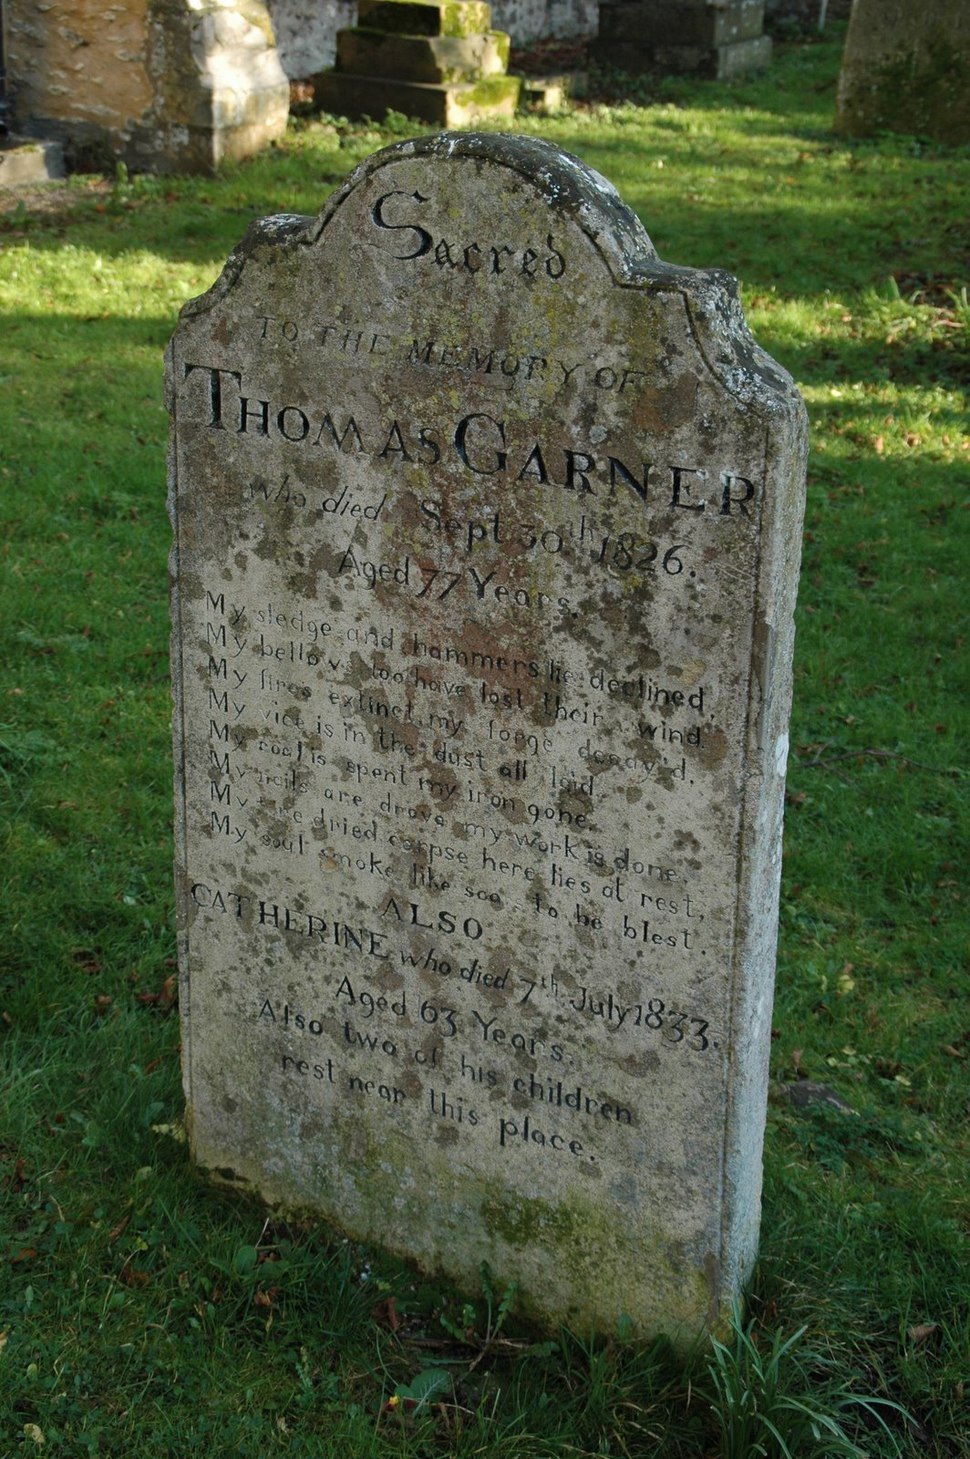 Garner headstone with eitaph, Houghton, Cambridgeshire